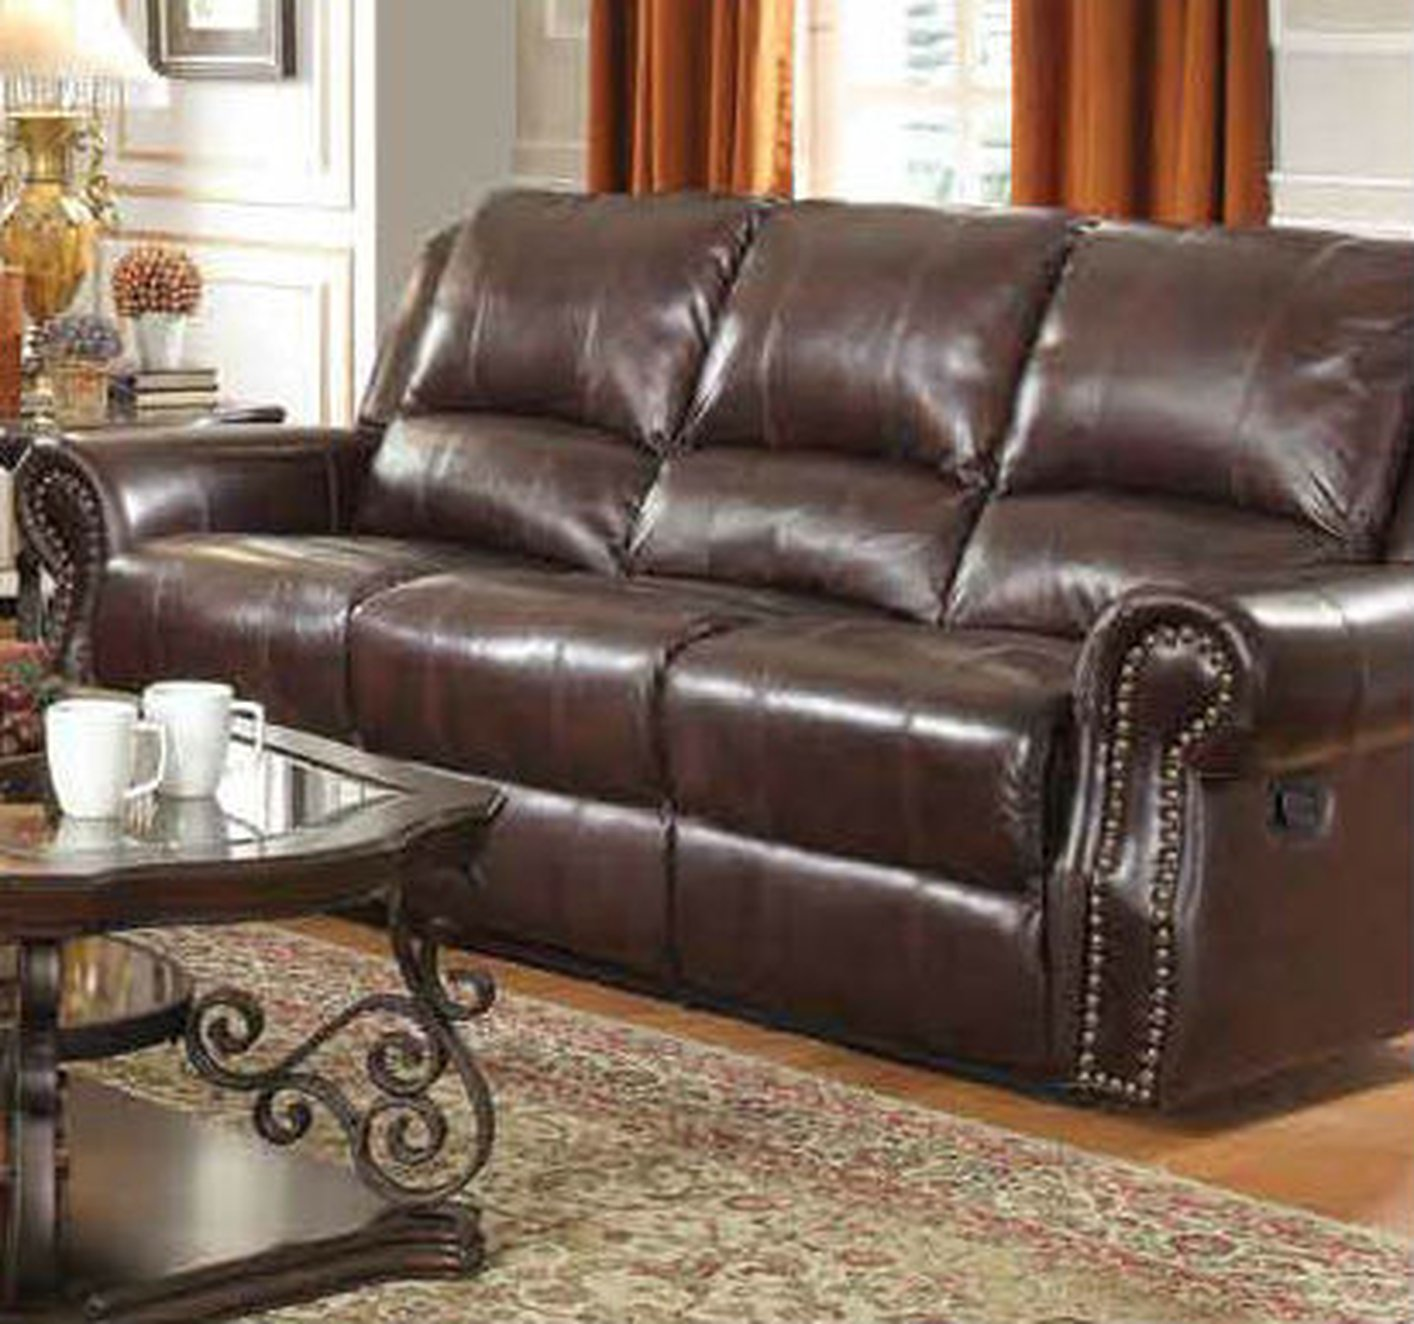 Brown Leather Power Reclining Sofa Steal A Furniture Outlet : recliner sofa leather - islam-shia.org